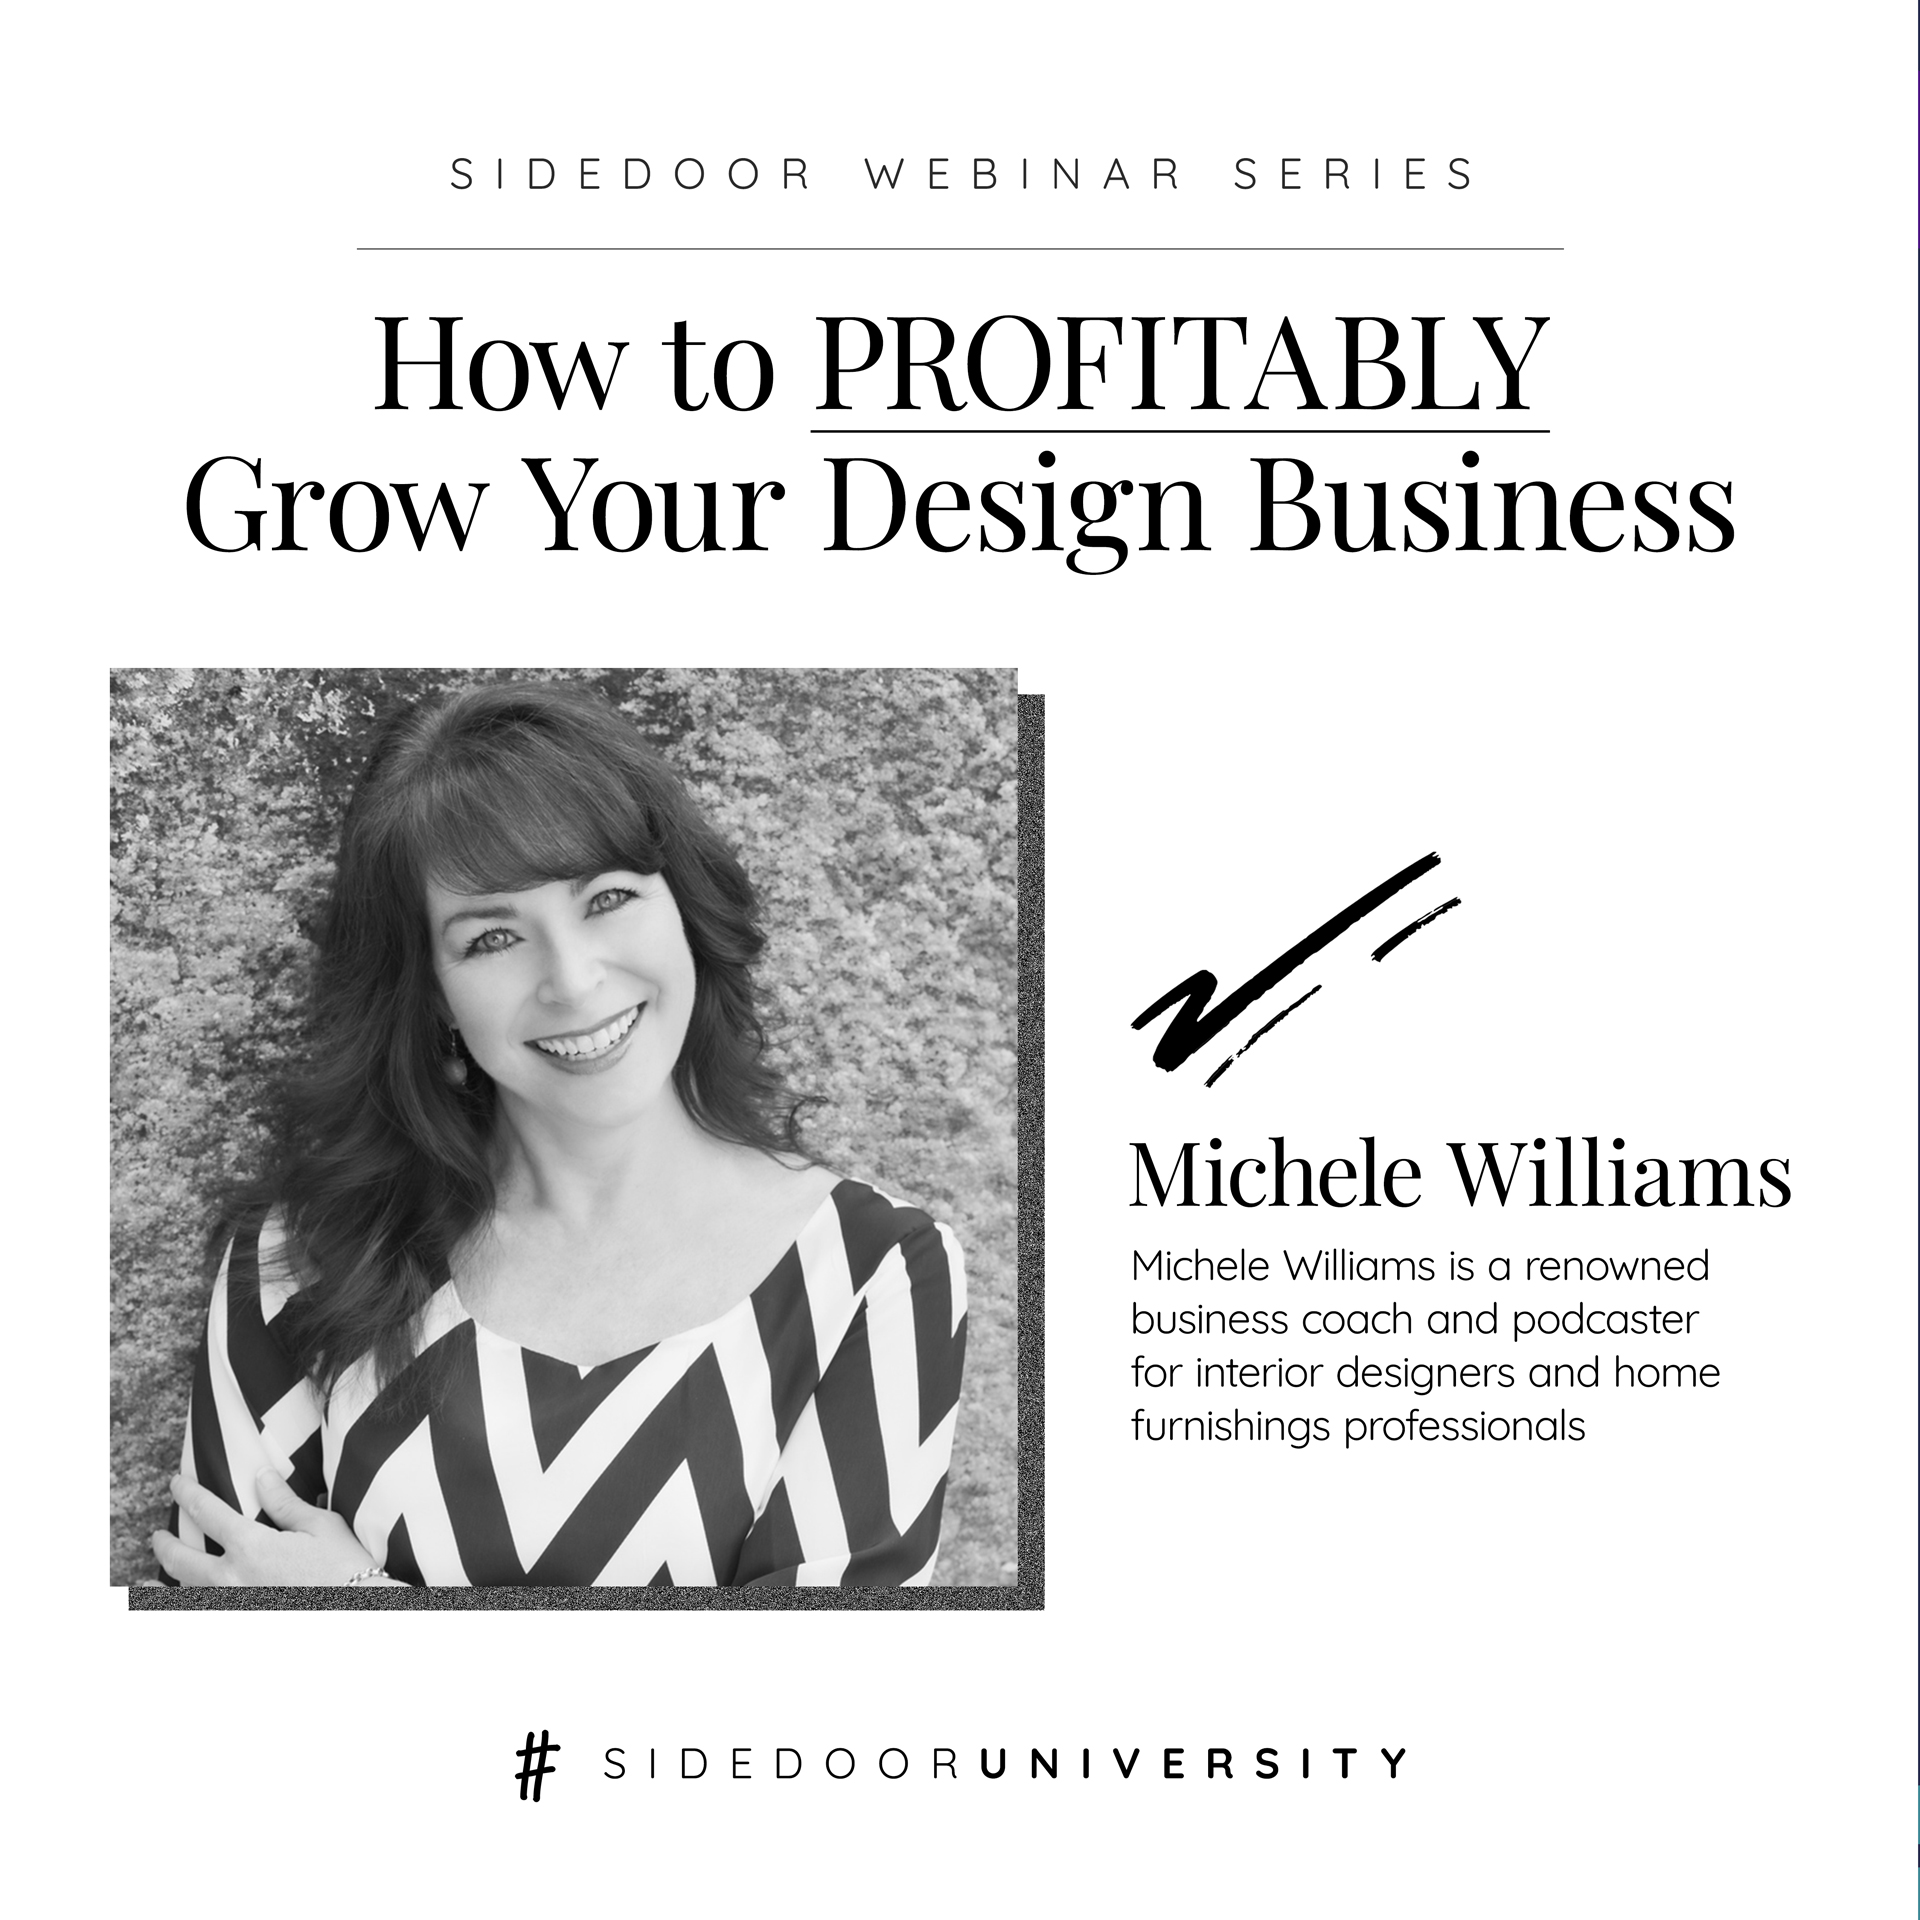 How to Profitably Grow Your Design Business